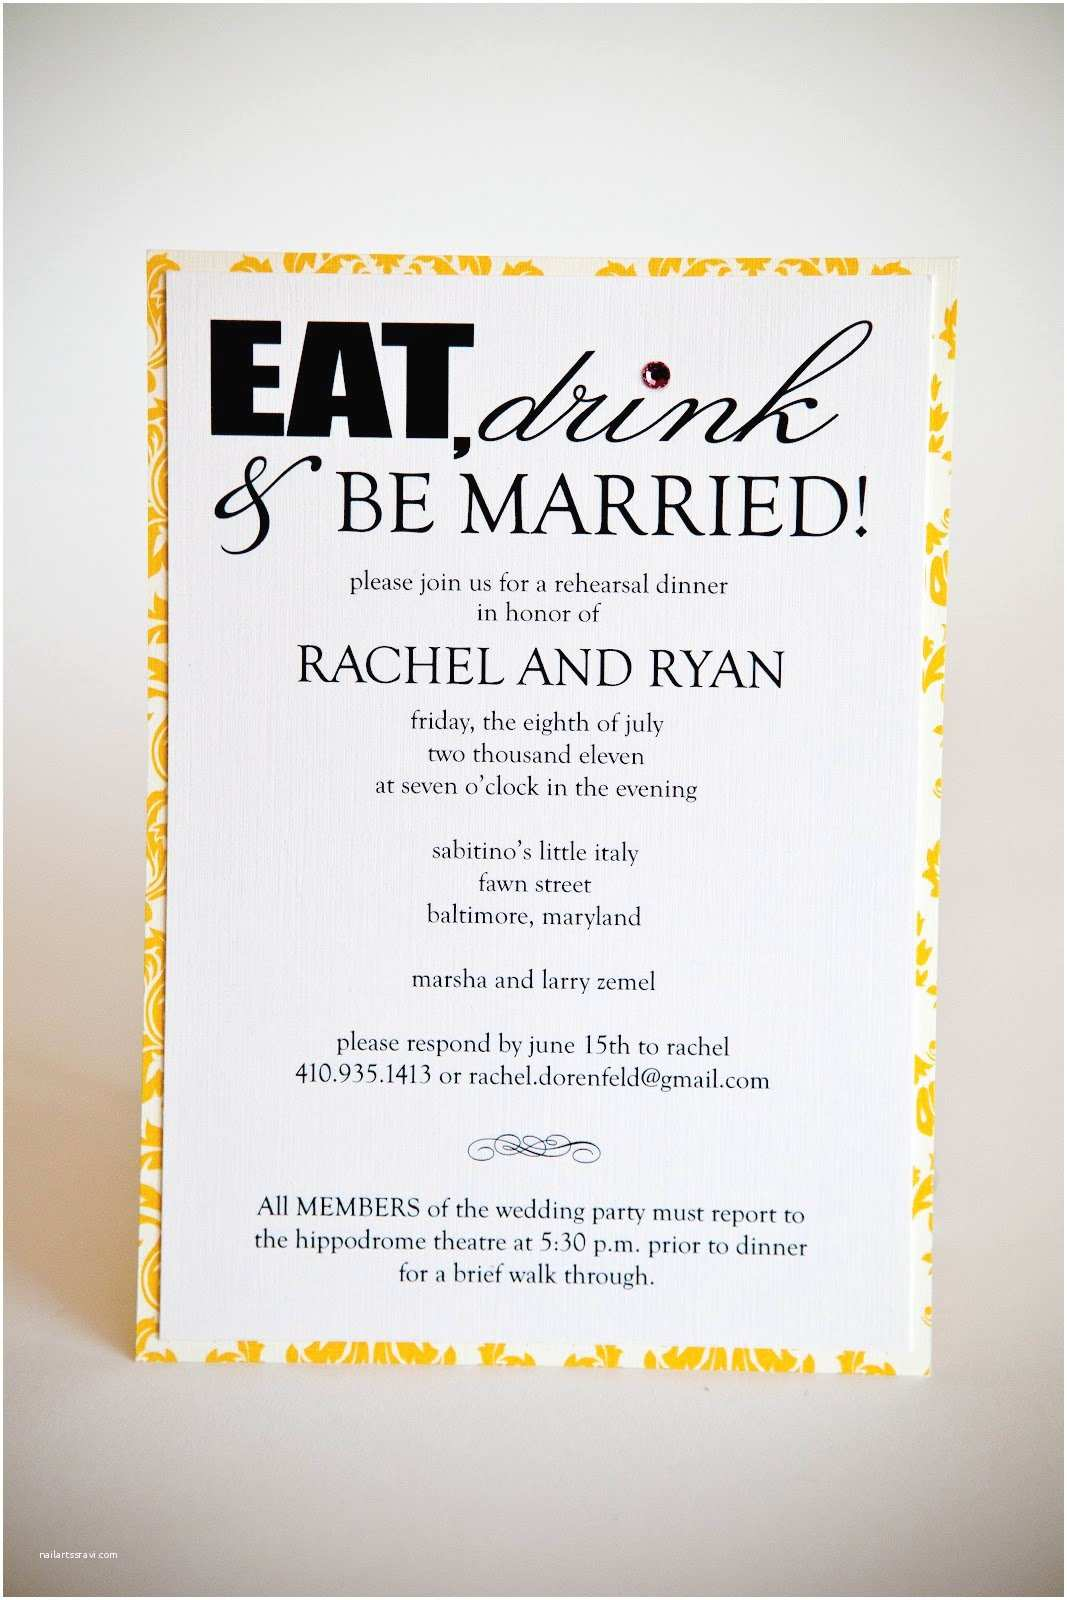 Wedding Rehearsal Dinner Invitations Wedding Rehearsal Dinner Invitations Templates